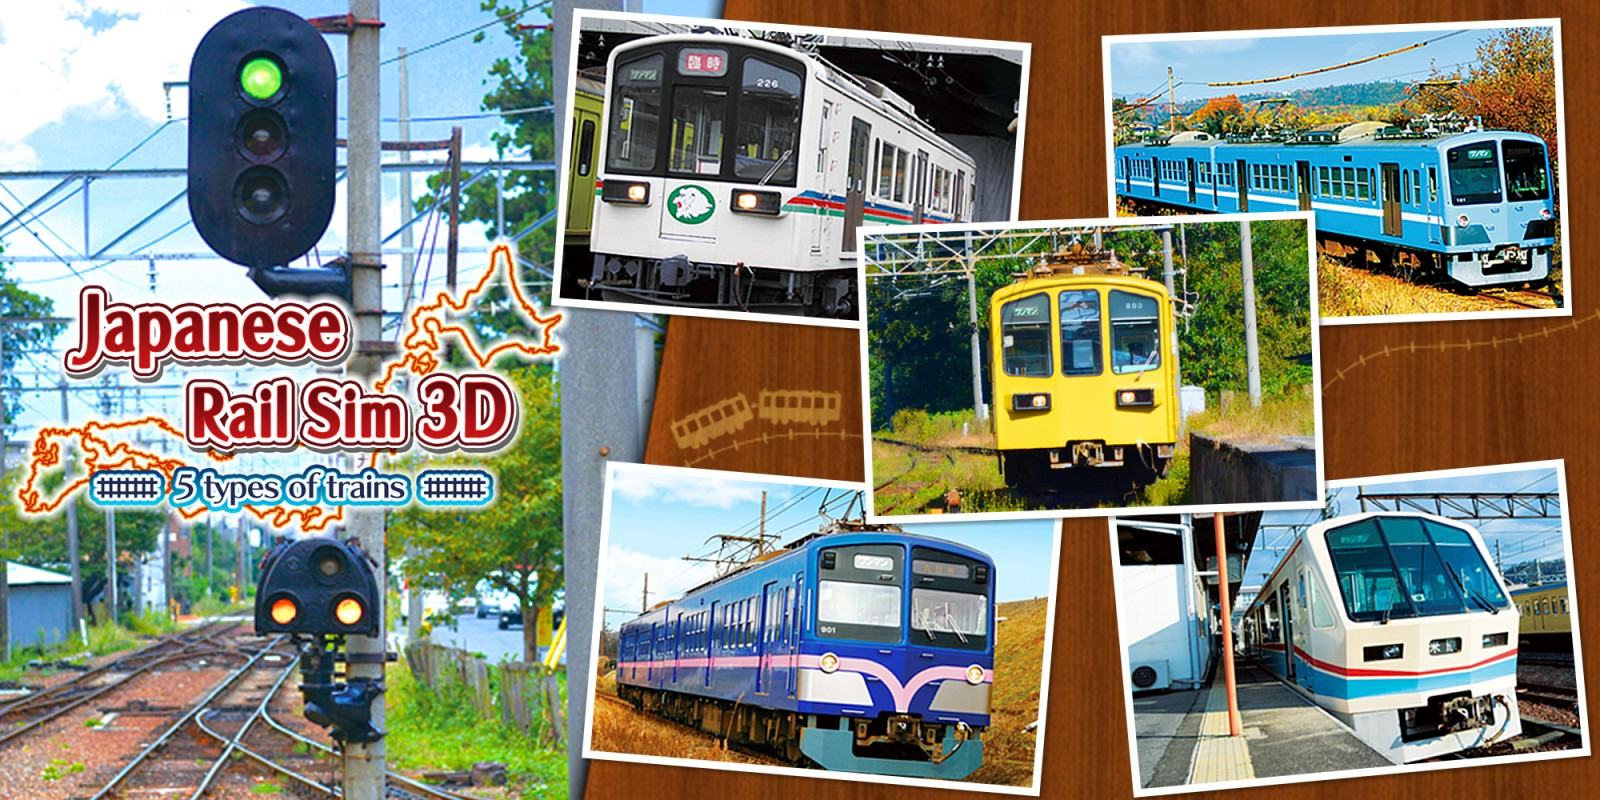 Japanese Rail Sim 3D 5 types of trains | Nintendo 3DS